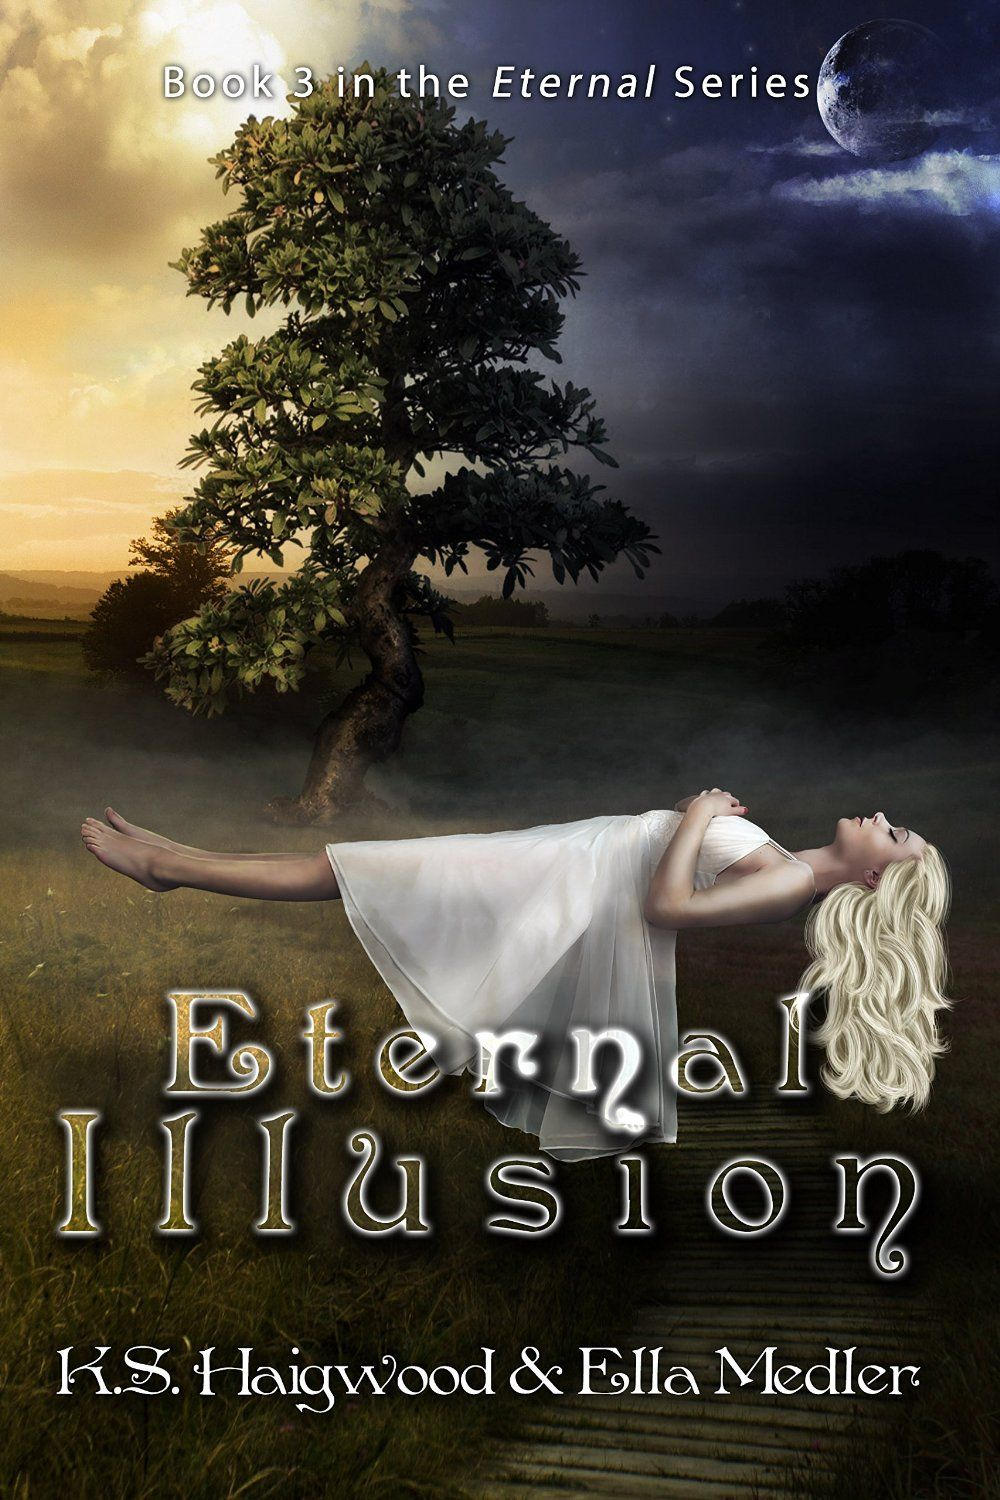 https://www.thunderclap.it/projects/22107-eternal-illusion-new-release